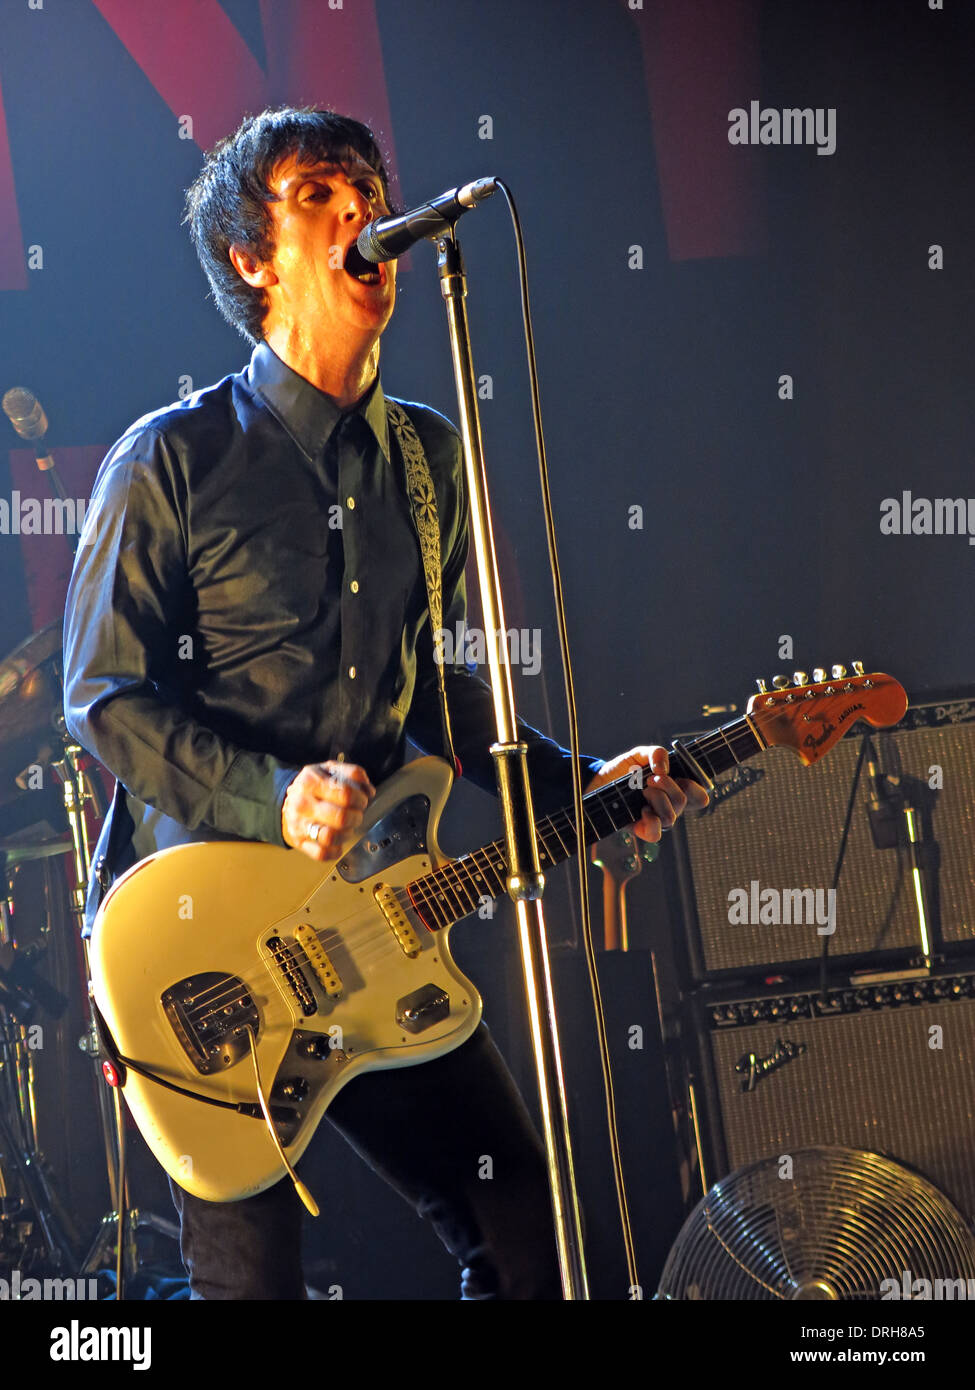 the,Uni,University,NW,Northwest,North,west,Music,12/10/2013,stage,playing,fender,guitar,England,UK,2013,12-10-2013,Buy Pictures of,Buy Images Of,Gotonysmith Johnny Marr (born John Martin Maher,31 October 1963) is an English musician,singer,and,songwriter.,He,was,co-songwriter,–,with,Morrissey,–,and,guitarist,of,The,Smiths,between,1982–87.,Marr,has,also,been,a,member,of,Electronic,The The,Modest Mouse and The Cribs,as well as a prolific session musician. In 2013,he,released,a,solo,album,titled,The,Messenger,(2013).,In,2013,the NME honoured Marr with its Godlike Genius award,hailing Marr as,He,was,voted,the,fourth,best,guitarist,of,the,last,30,years,in,a,poll,conducted,by,the,BBC,in,2010.,Phil,Alexander,Editor-in-Chief of Mojo,has descr,not,content,with,rewriting,the,history,of,music,with,one,of,the,worlds,greatest,ever,bands,,The,Smiths,,hes,continued,to,push,boundaries,and,evolve,throughout,his,career,,working,with,some,of,the,best,and,most,exciting,artists,on,the,planet.